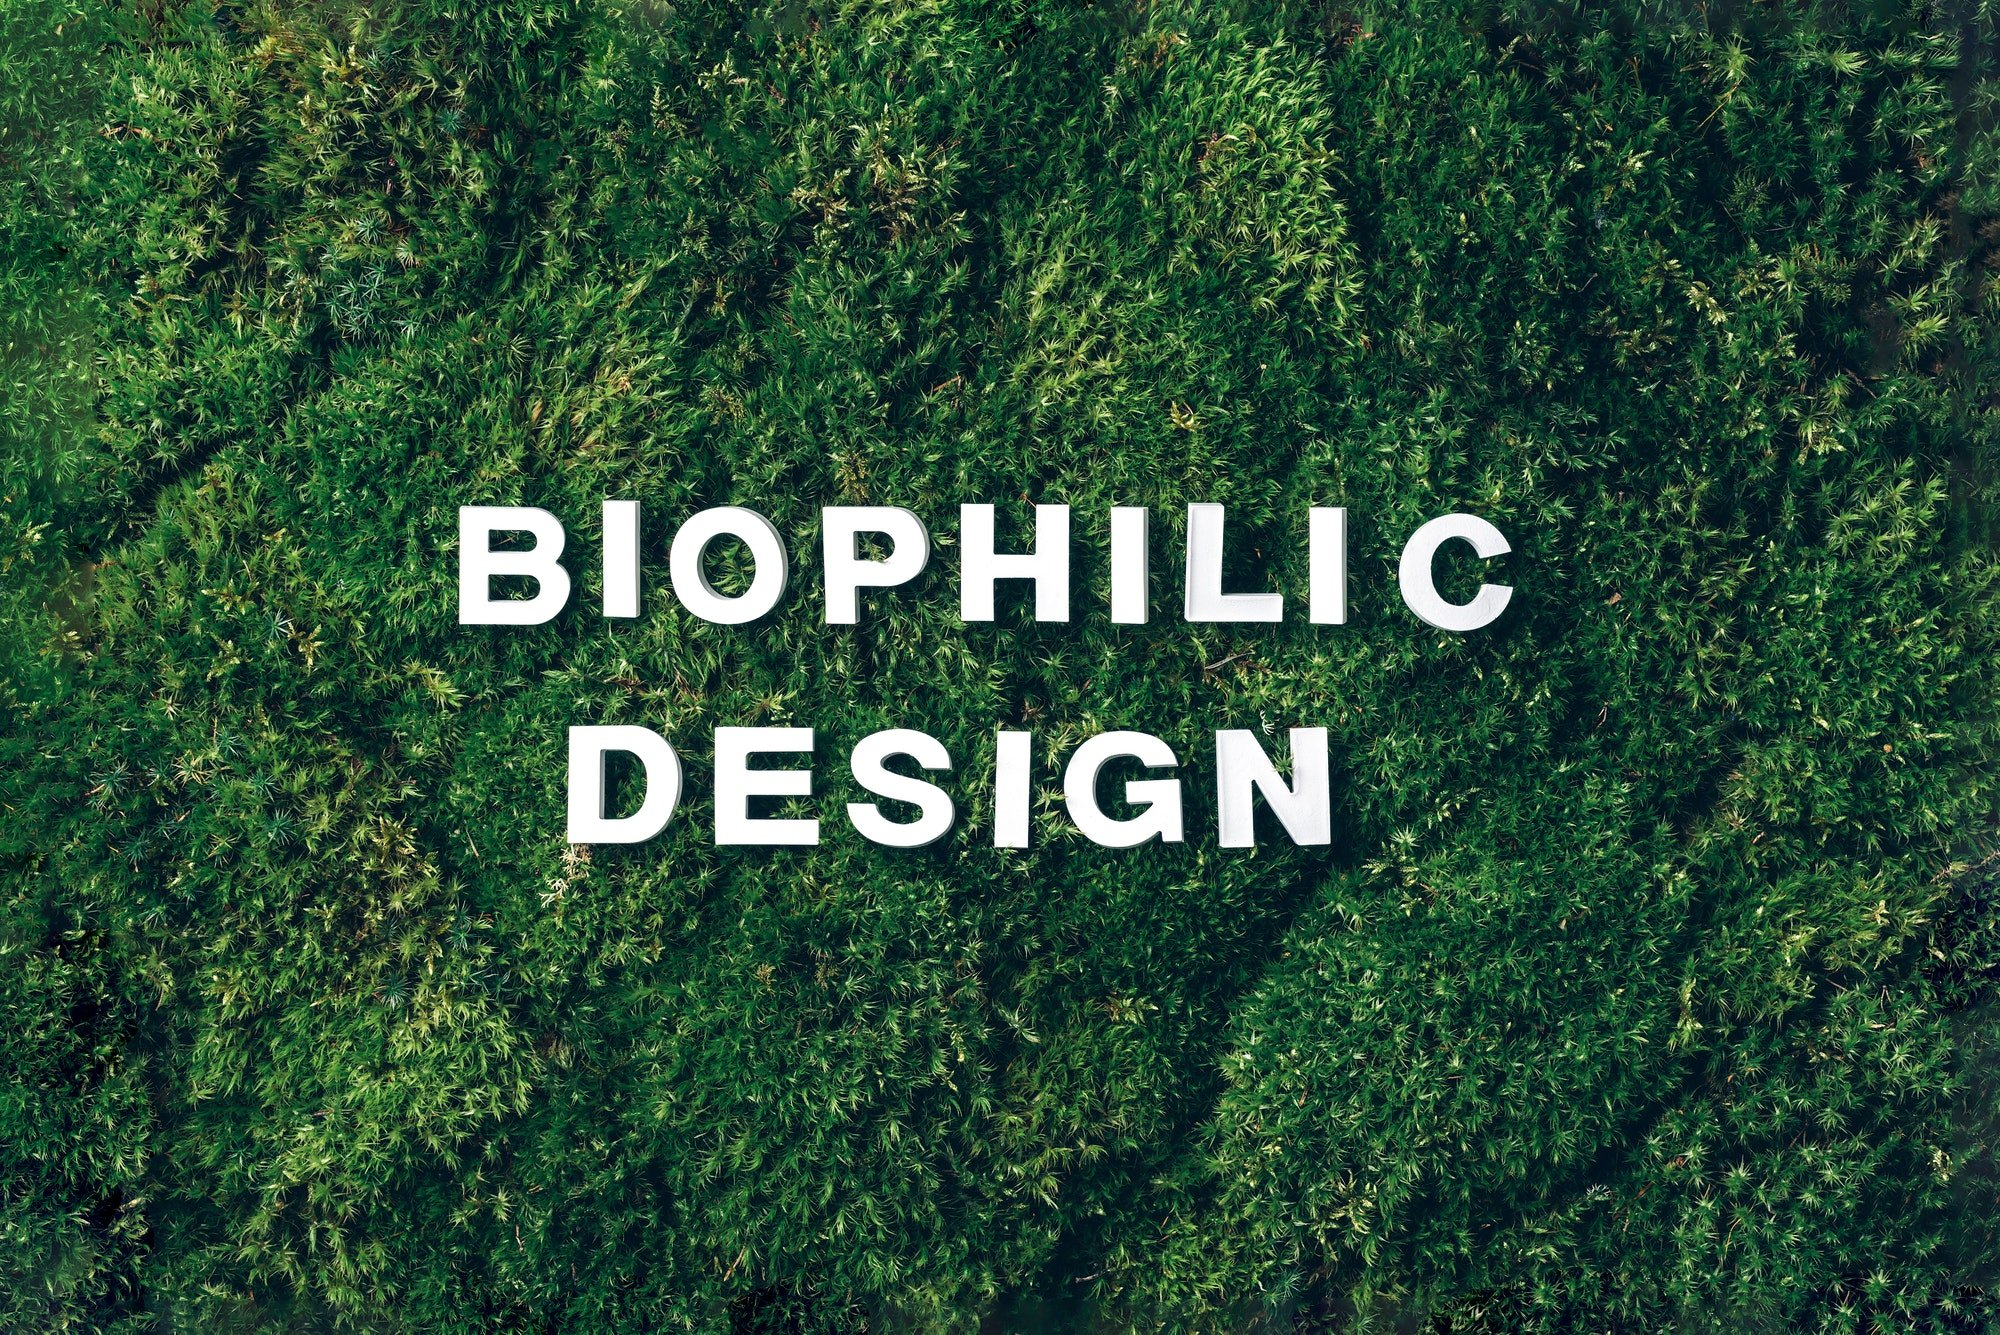 Biophilic design - white letters on green moss, grass background. Top view, copy space. Biophilia